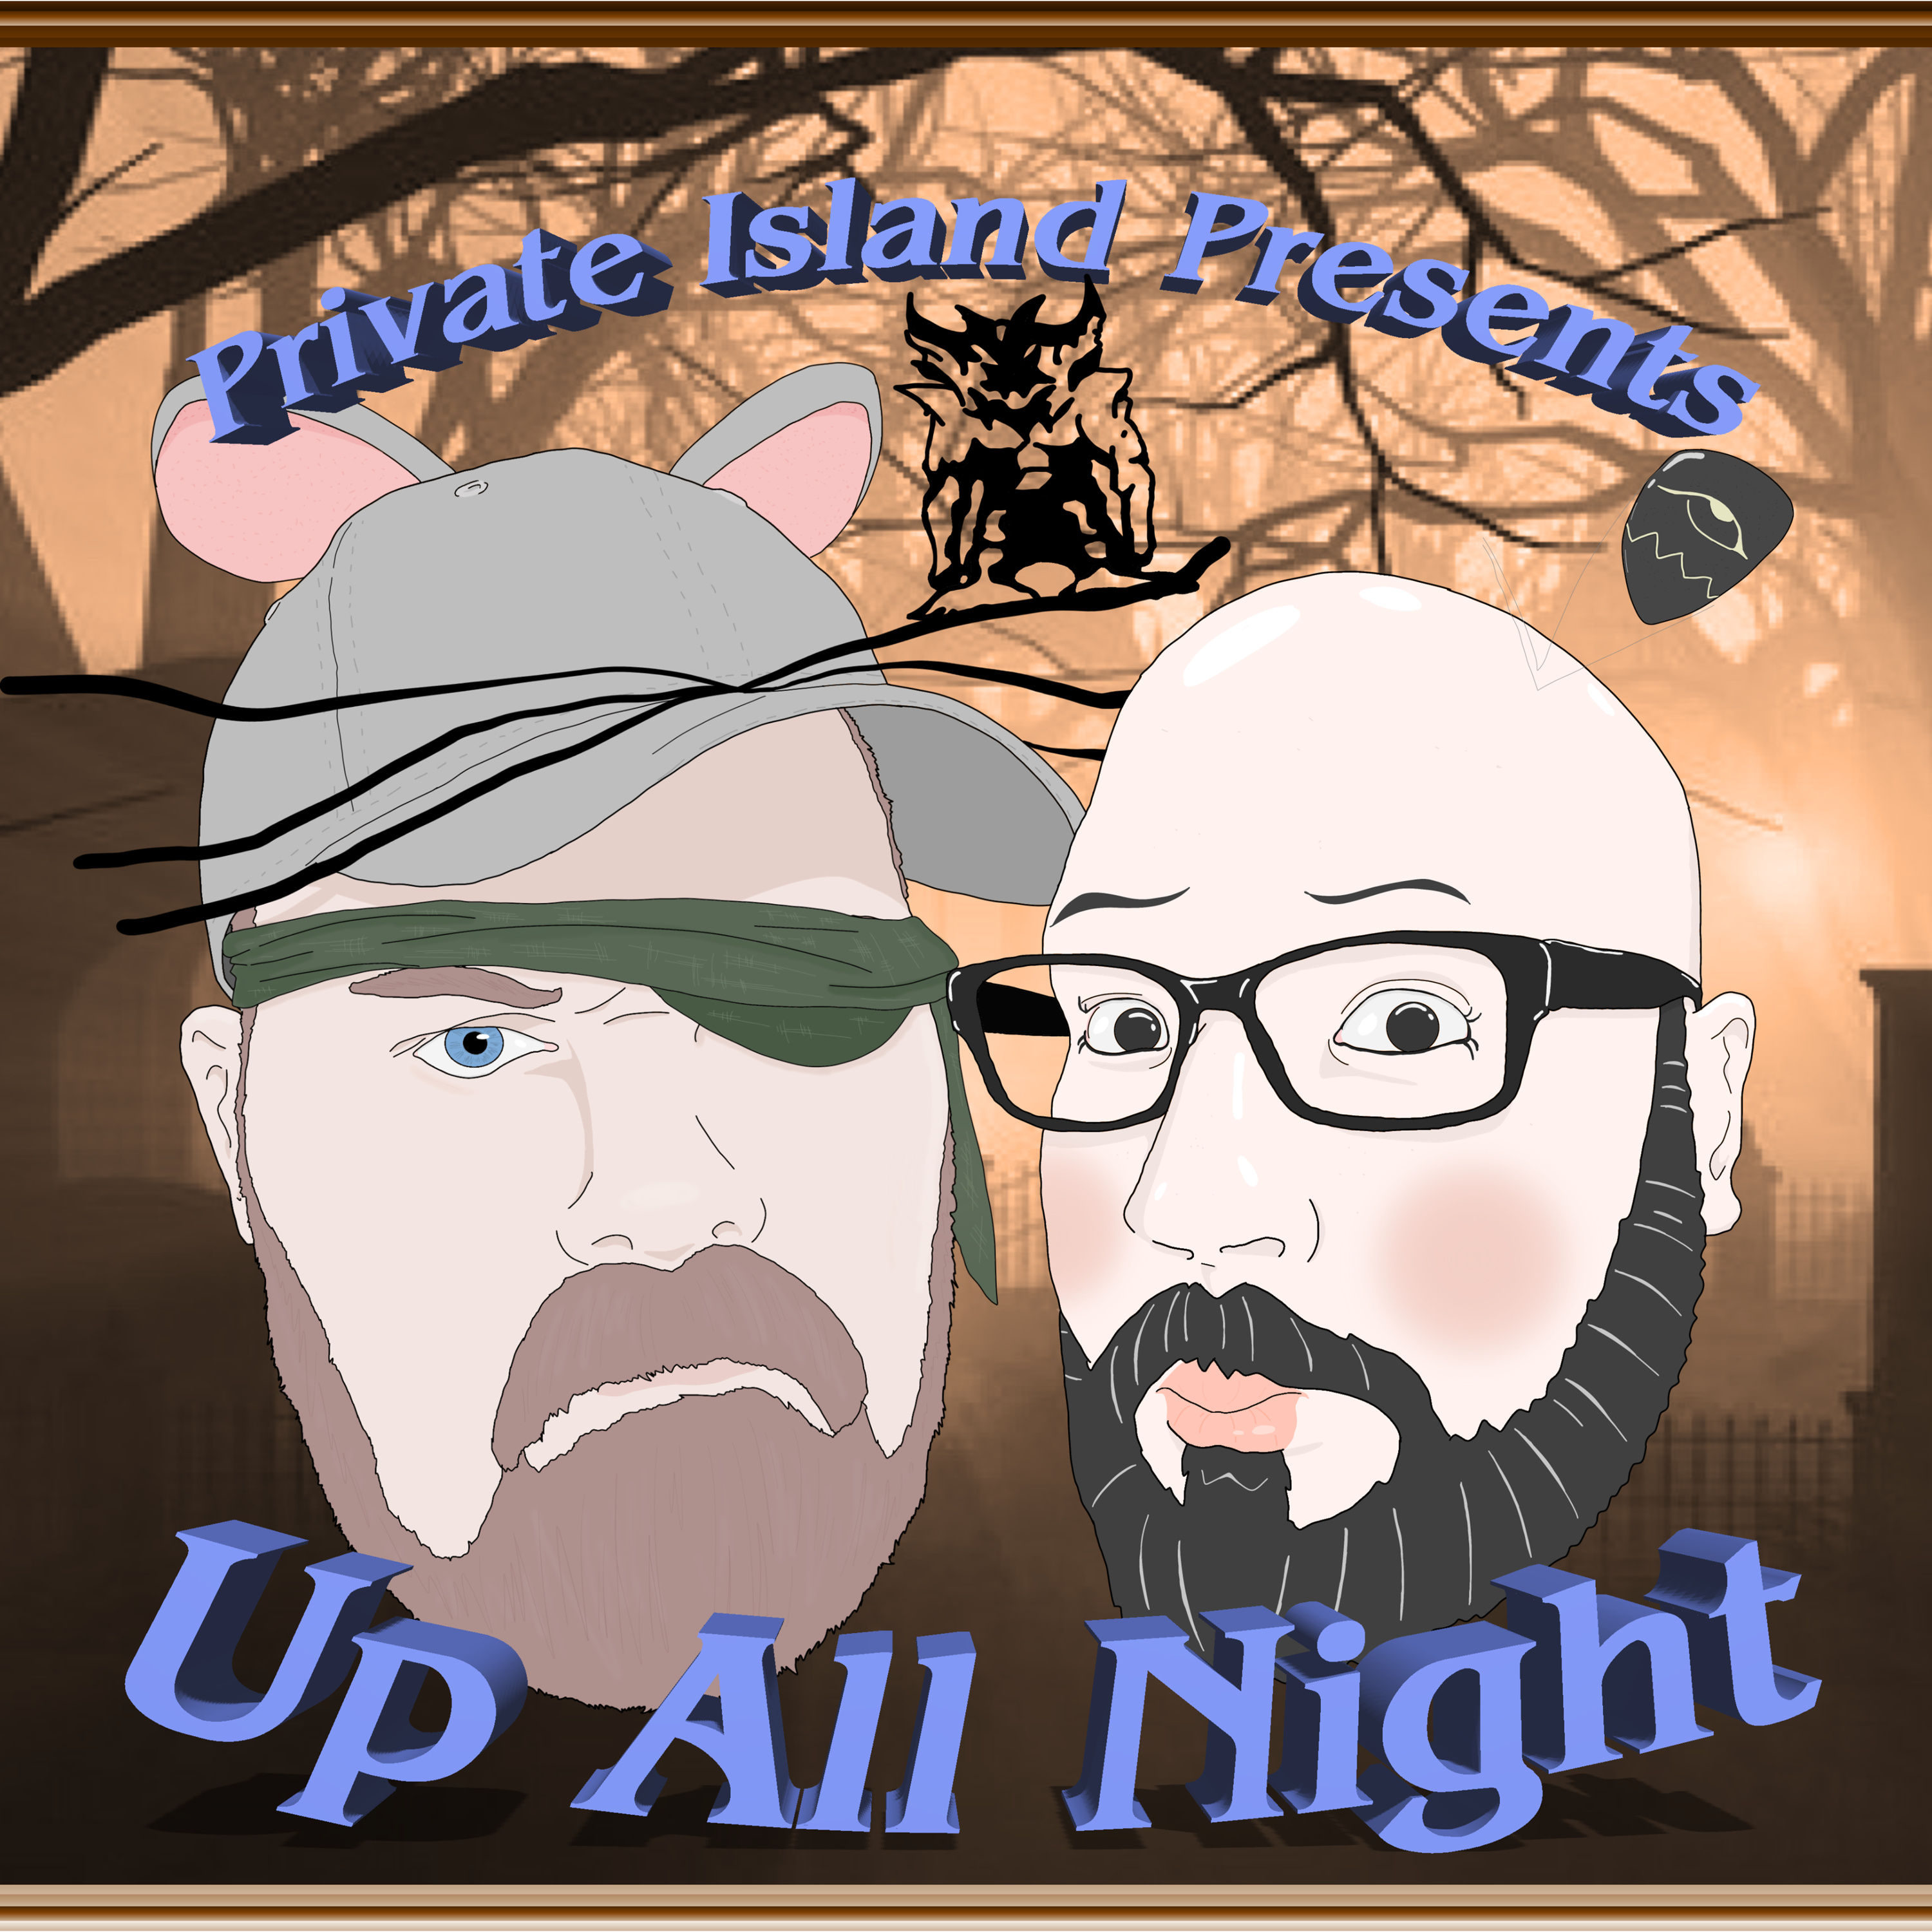 Private Island Presents: Up All Night